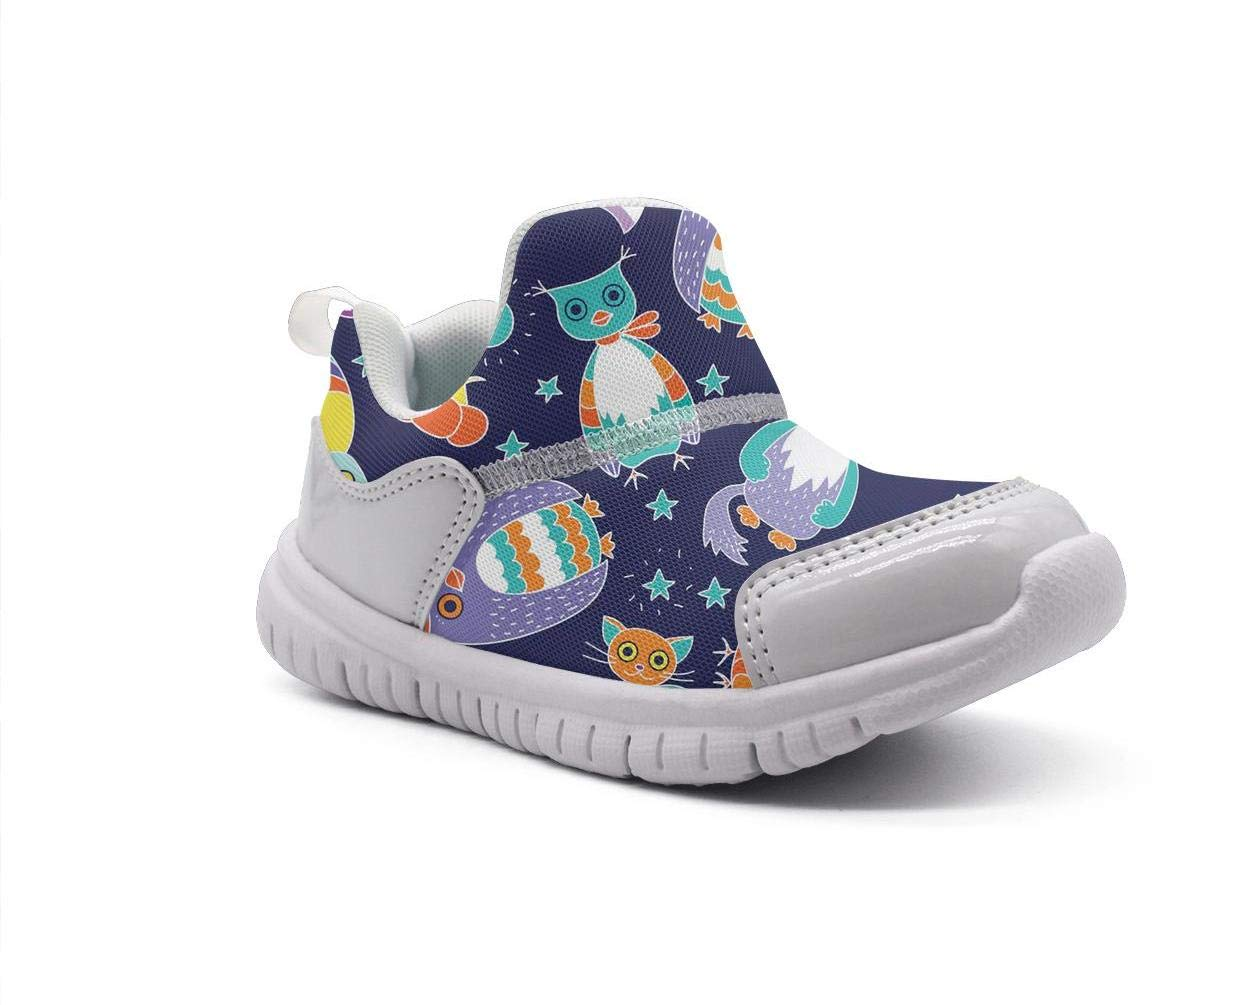 ONEYUAN Children Blue nitht Owls and Cats Kid Casual Lightweight Sport Shoes Sneakers Walking Athletic Shoes